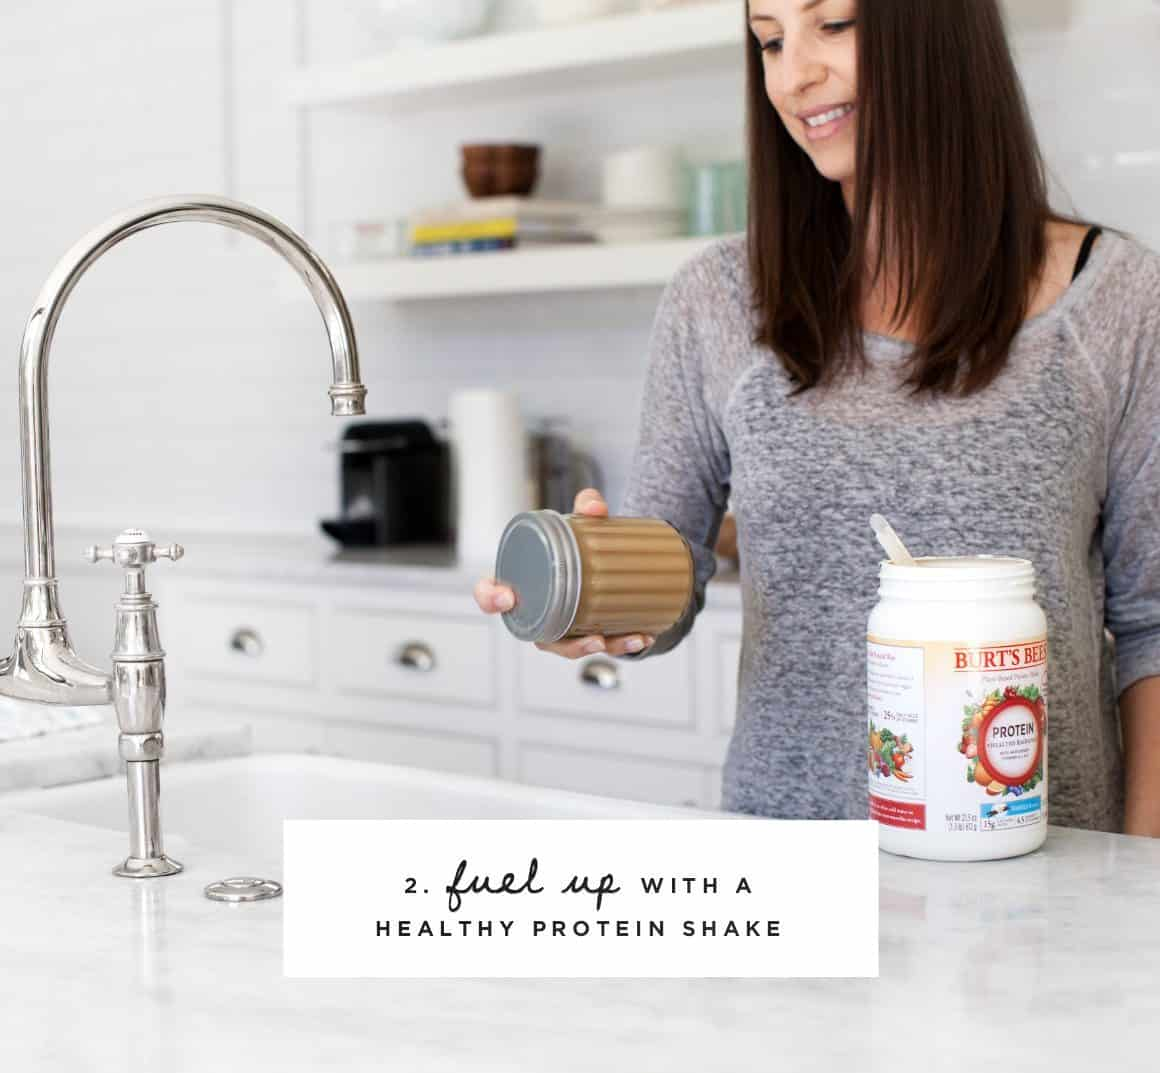 5 Tips for a Healthy Morning Routine